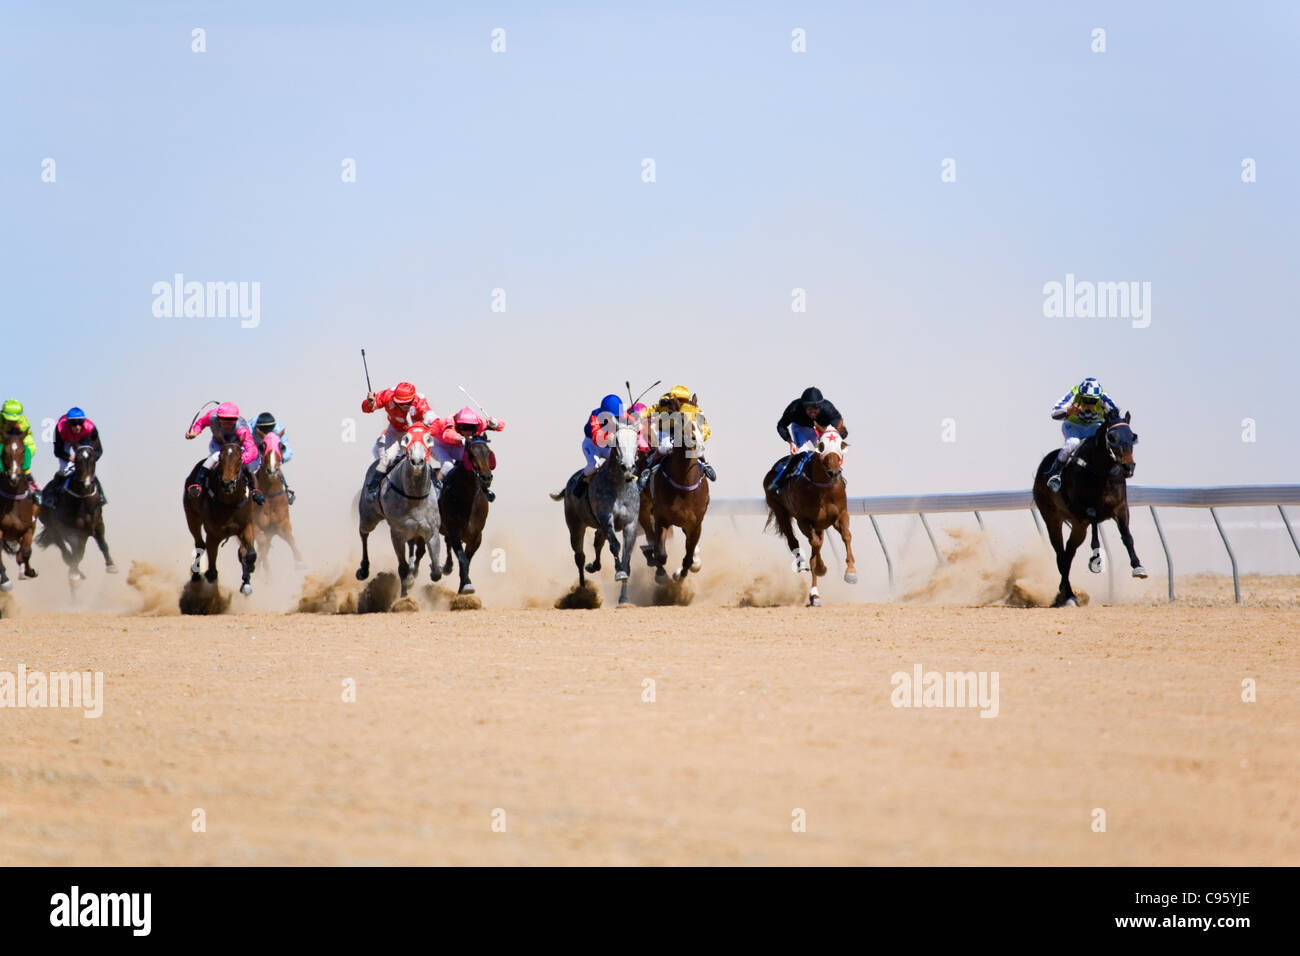 Horse racing in the Australian outback, at the annual Birdsville Cup races. - Stock Image